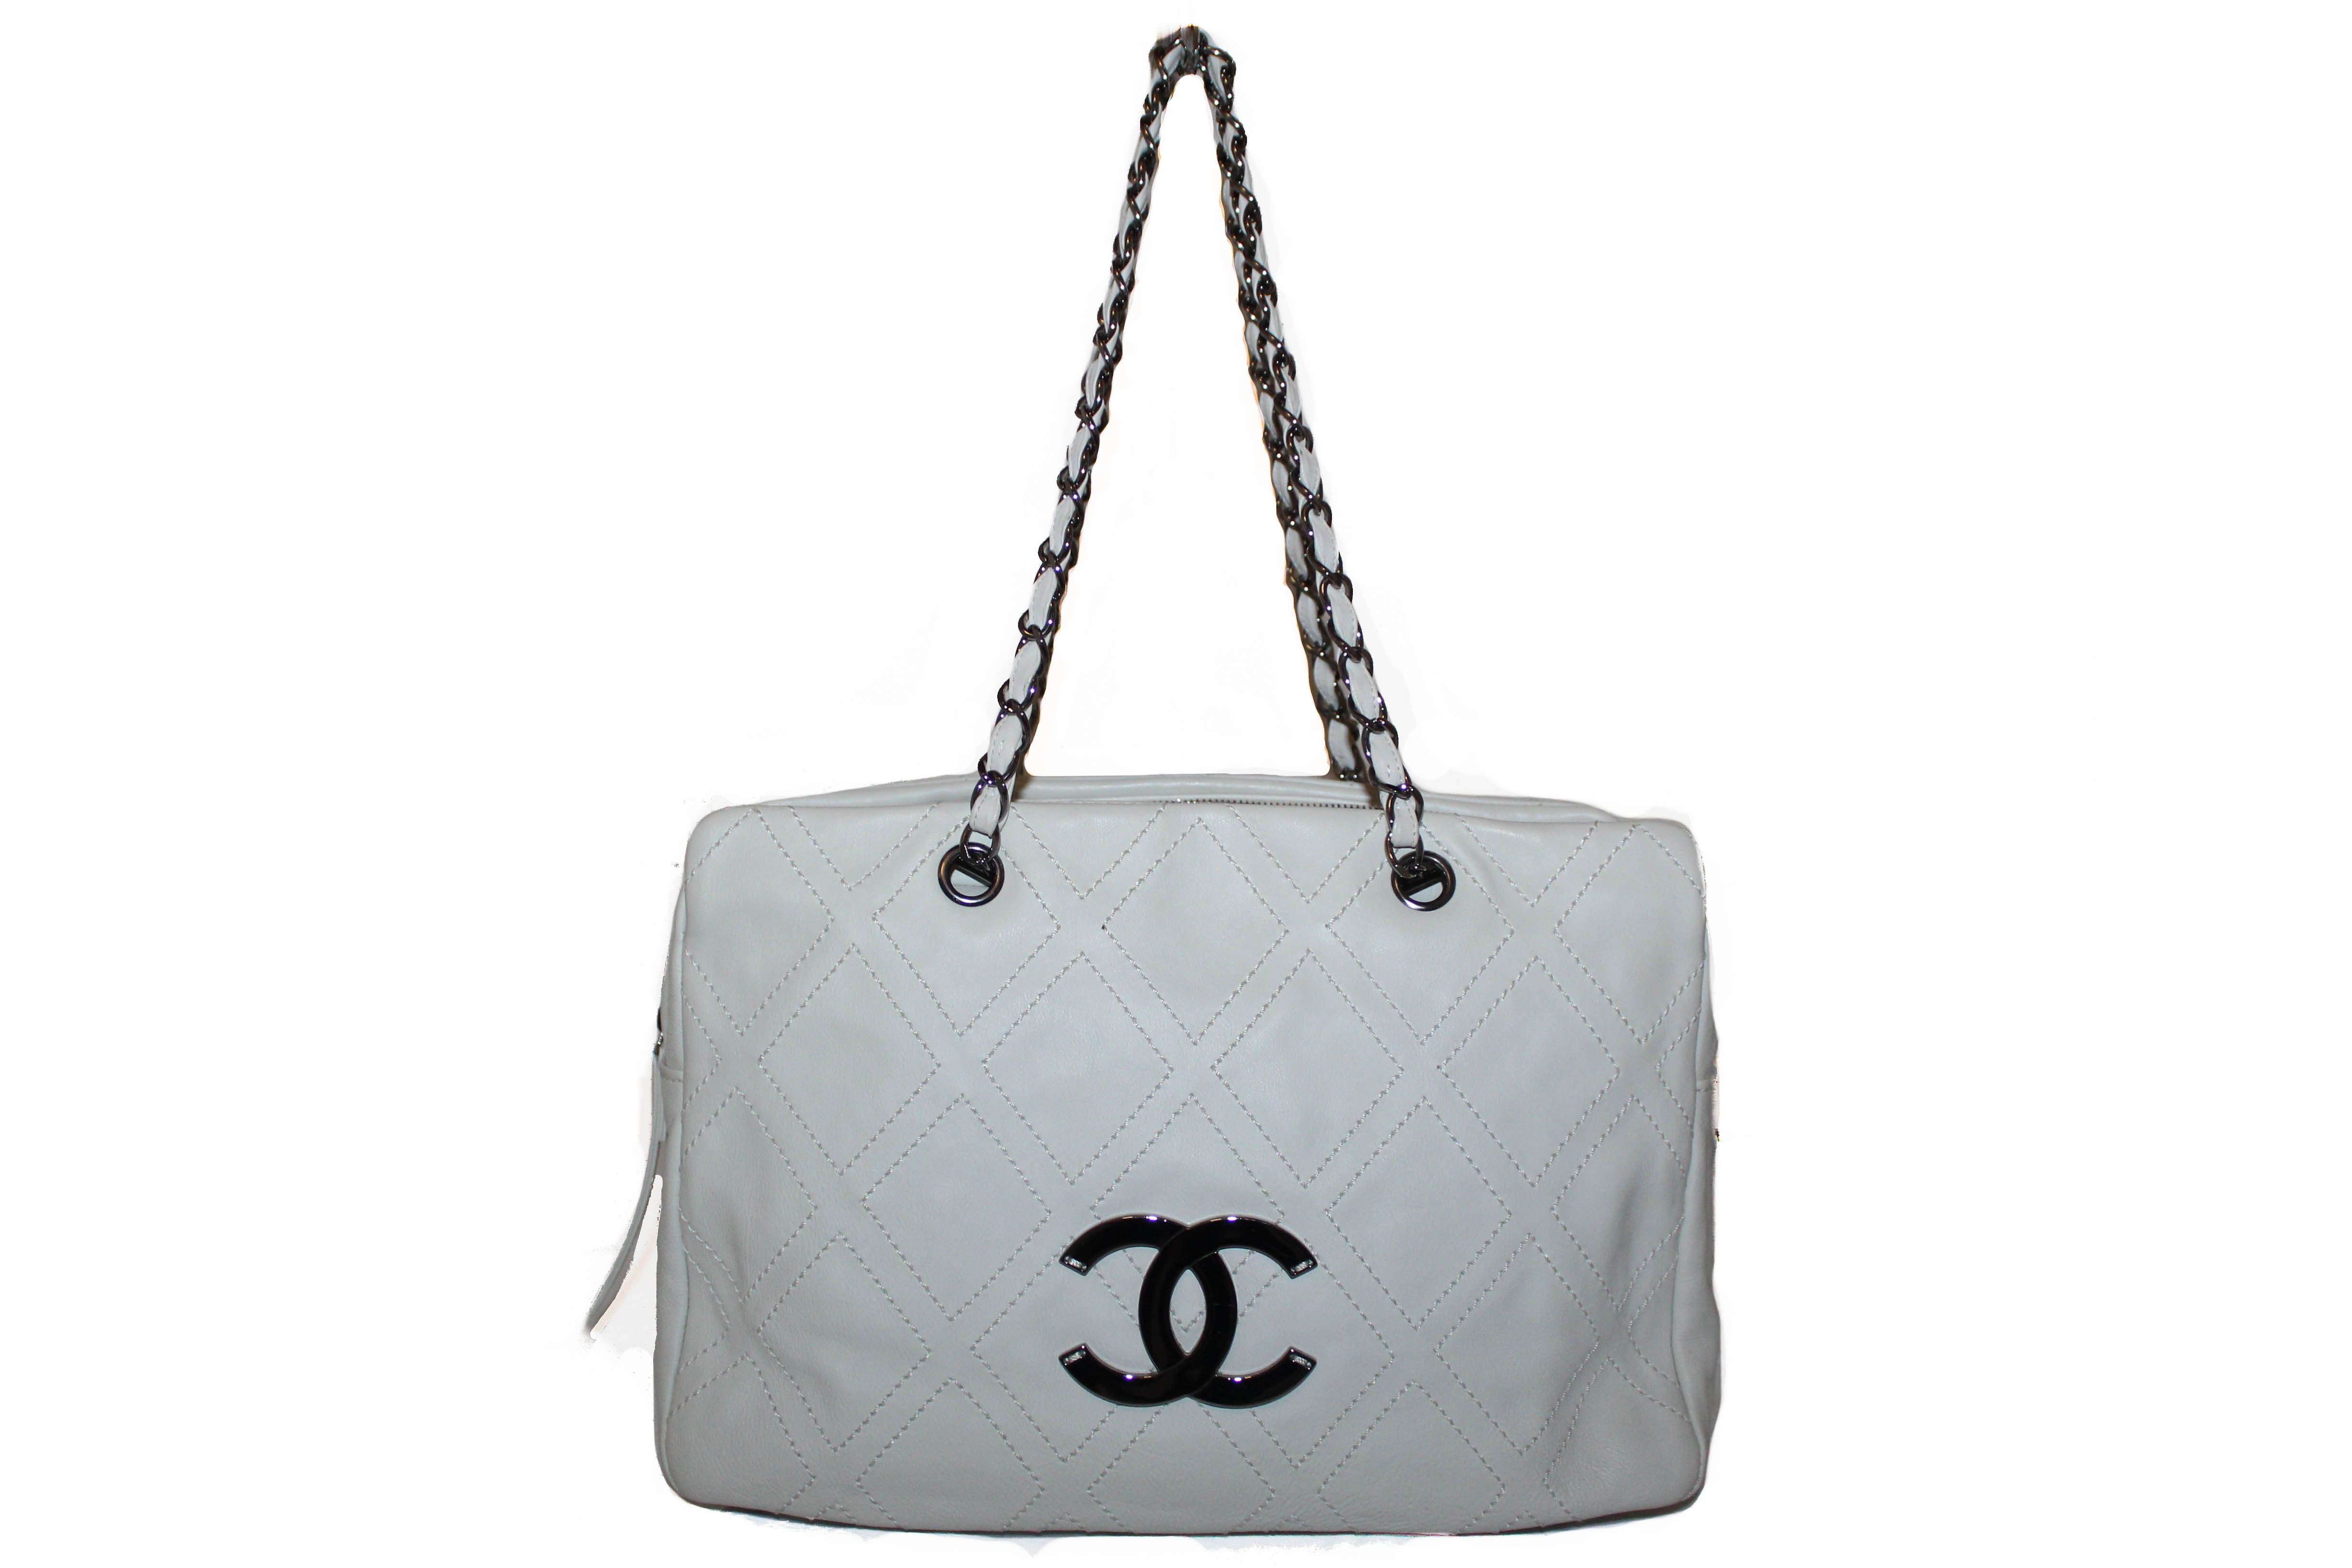 Authentic Chanel Off White Lambskin Leather Diamond Stitch Tote Bag